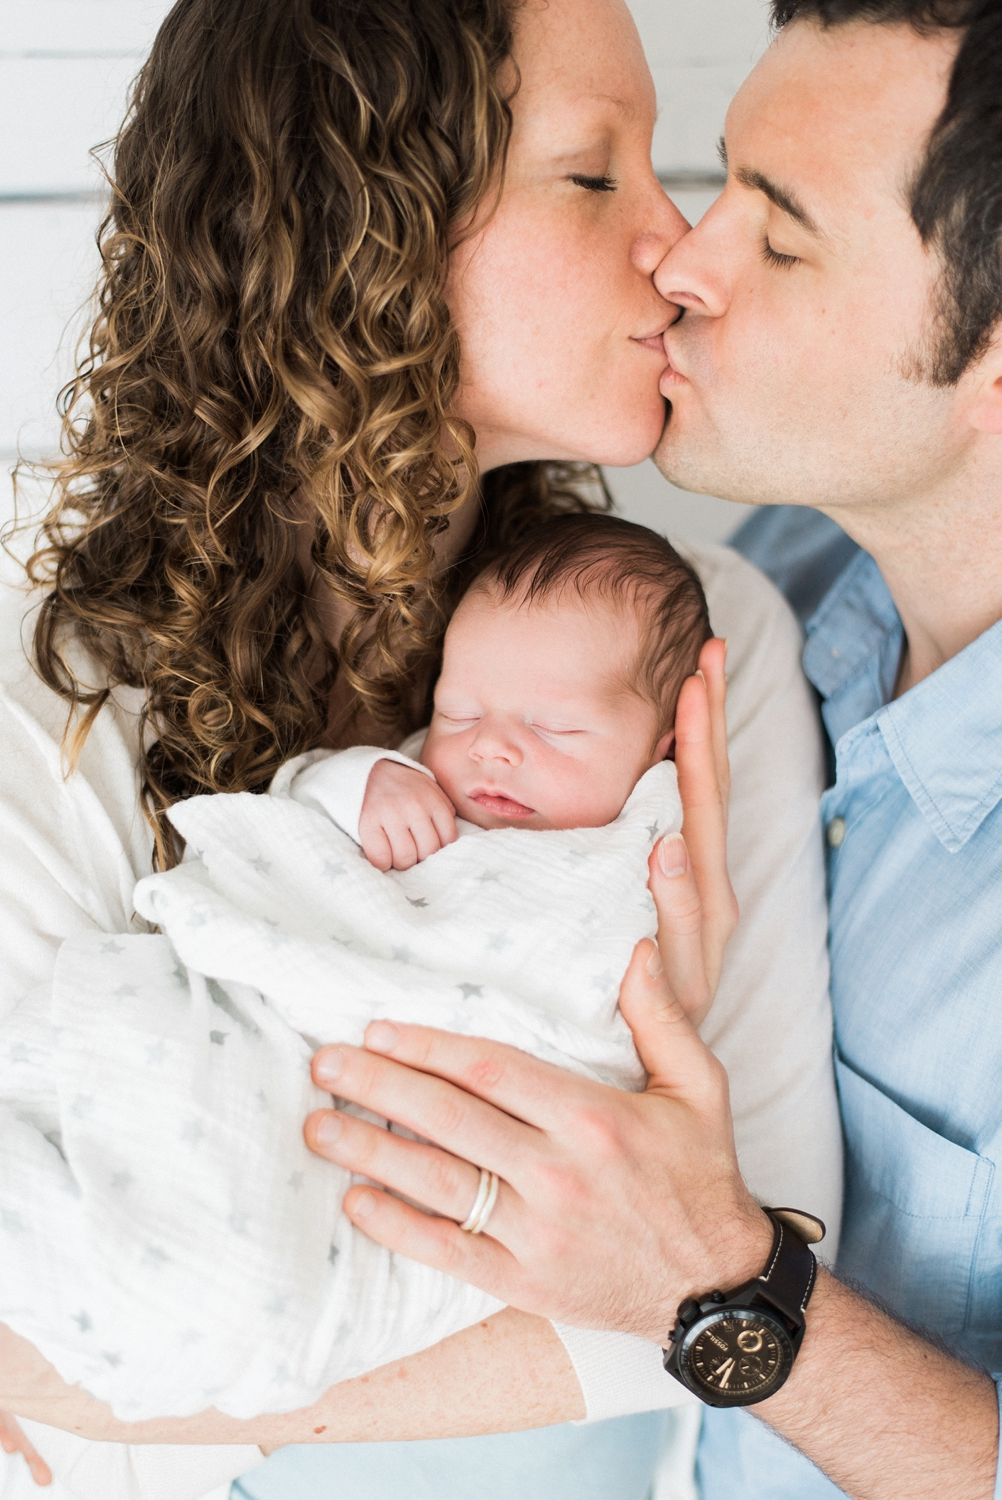 portland-newborn-family-session-shelley-marie-photo-031_cr.jpg